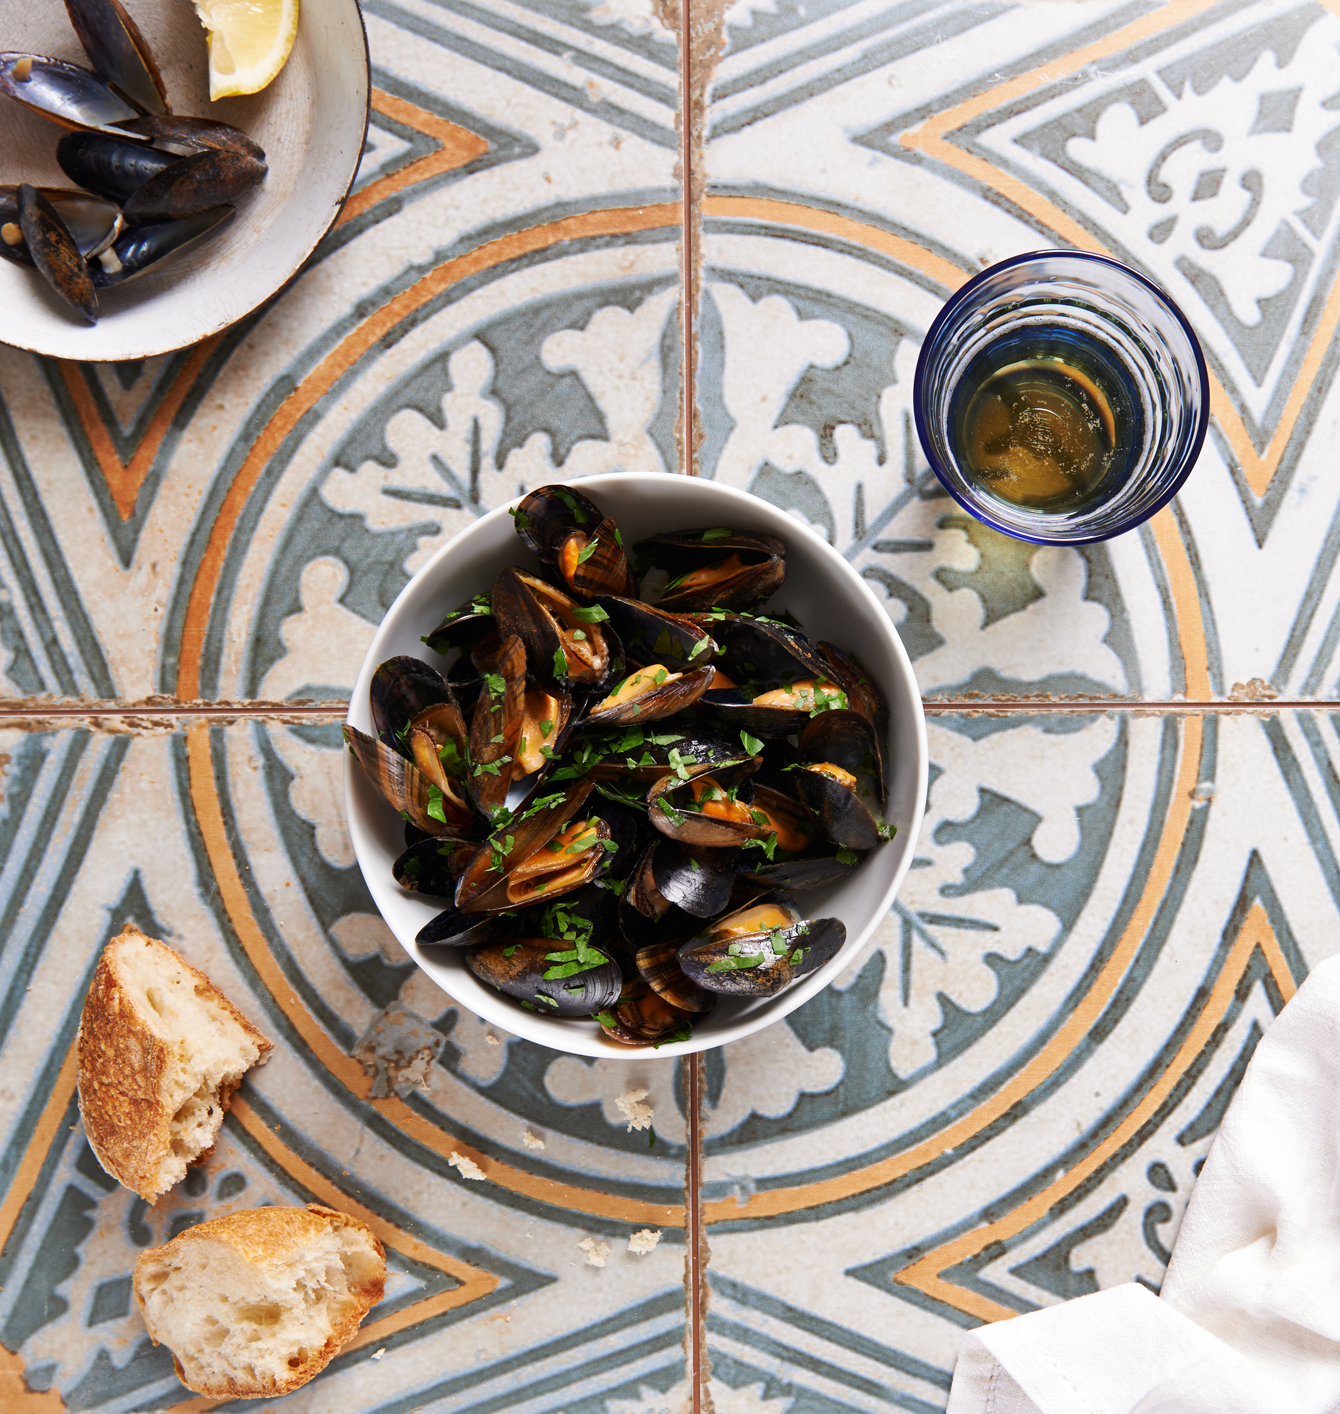 mussels served with beer and bread